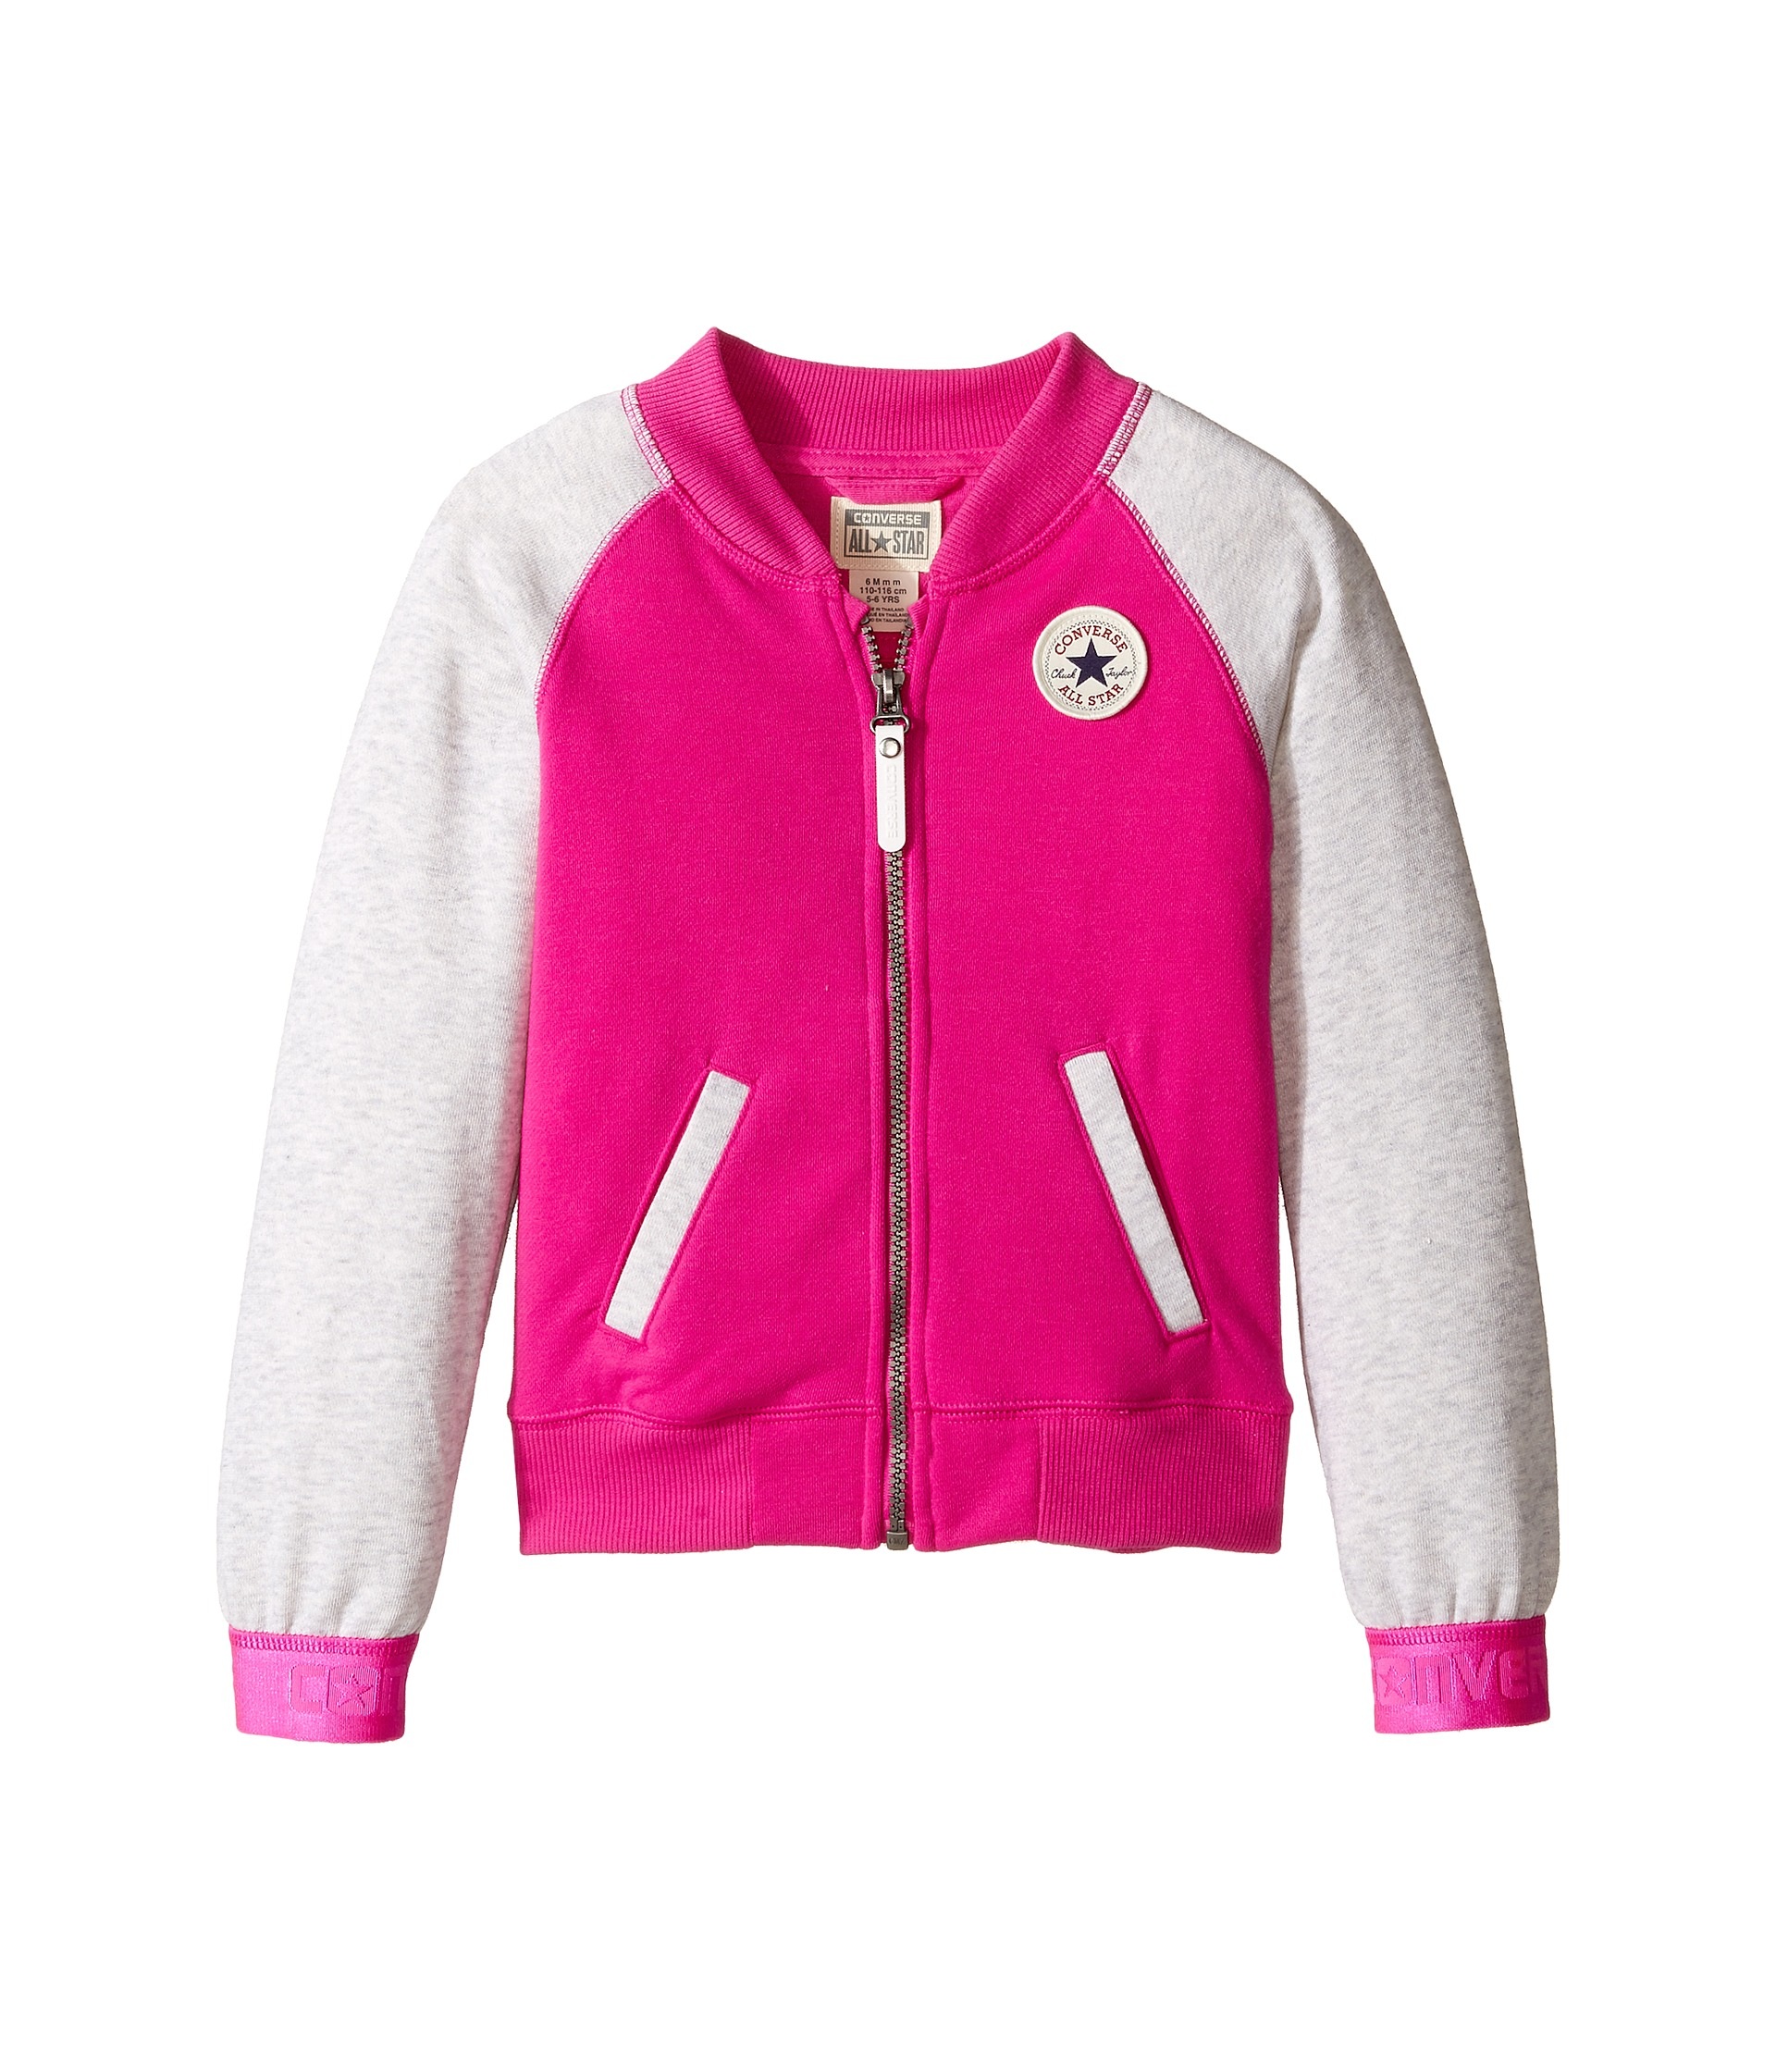 Find great deals on eBay for Kids Varsity Jackets in Boy's Outerwear Sizes 4 and Up. Shop with confidence.